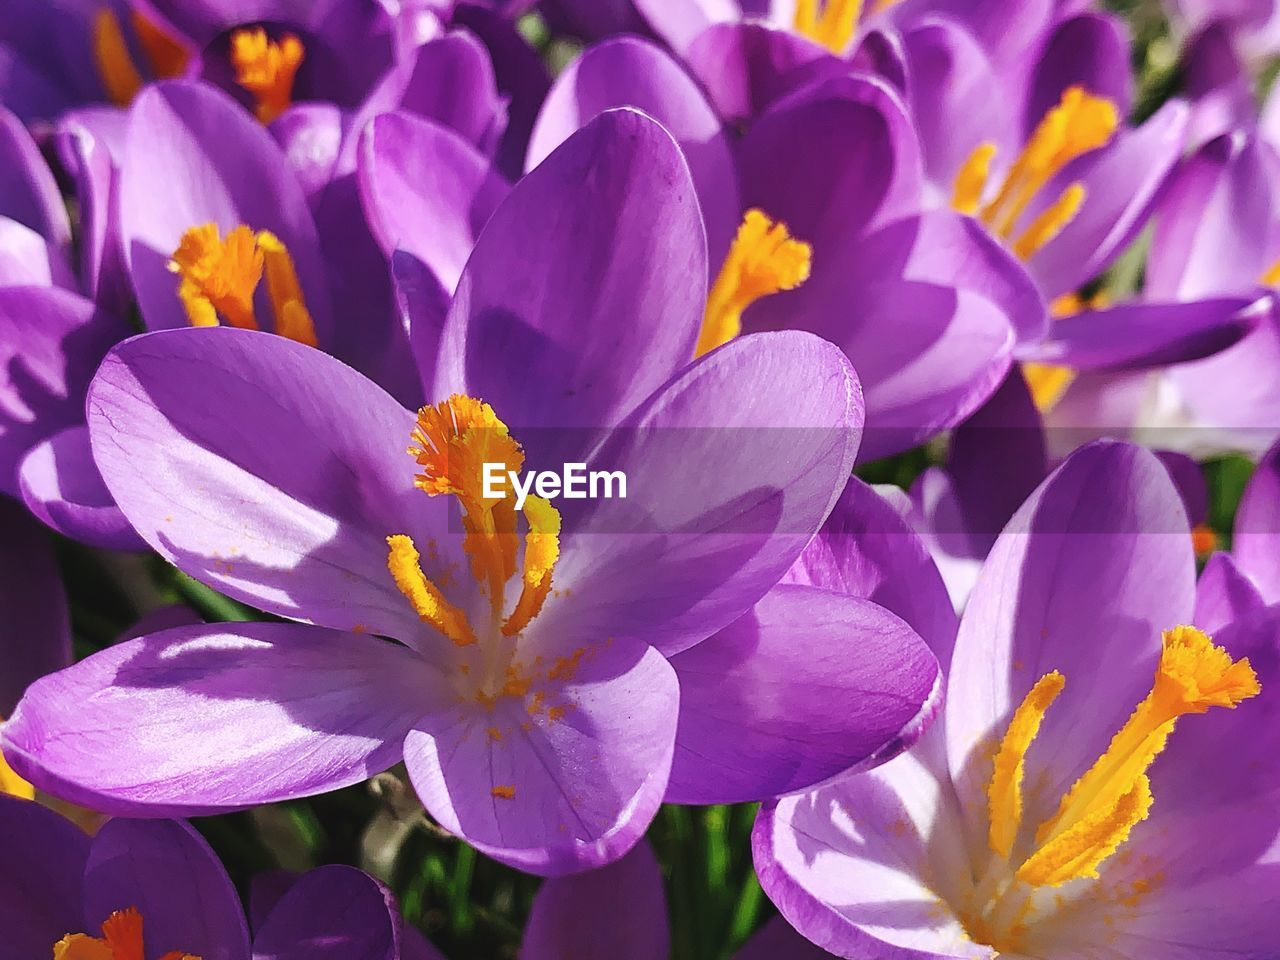 flower, flowering plant, vulnerability, fragility, plant, beauty in nature, freshness, petal, close-up, growth, inflorescence, flower head, purple, no people, nature, crocus, pollen, day, focus on foreground, iris